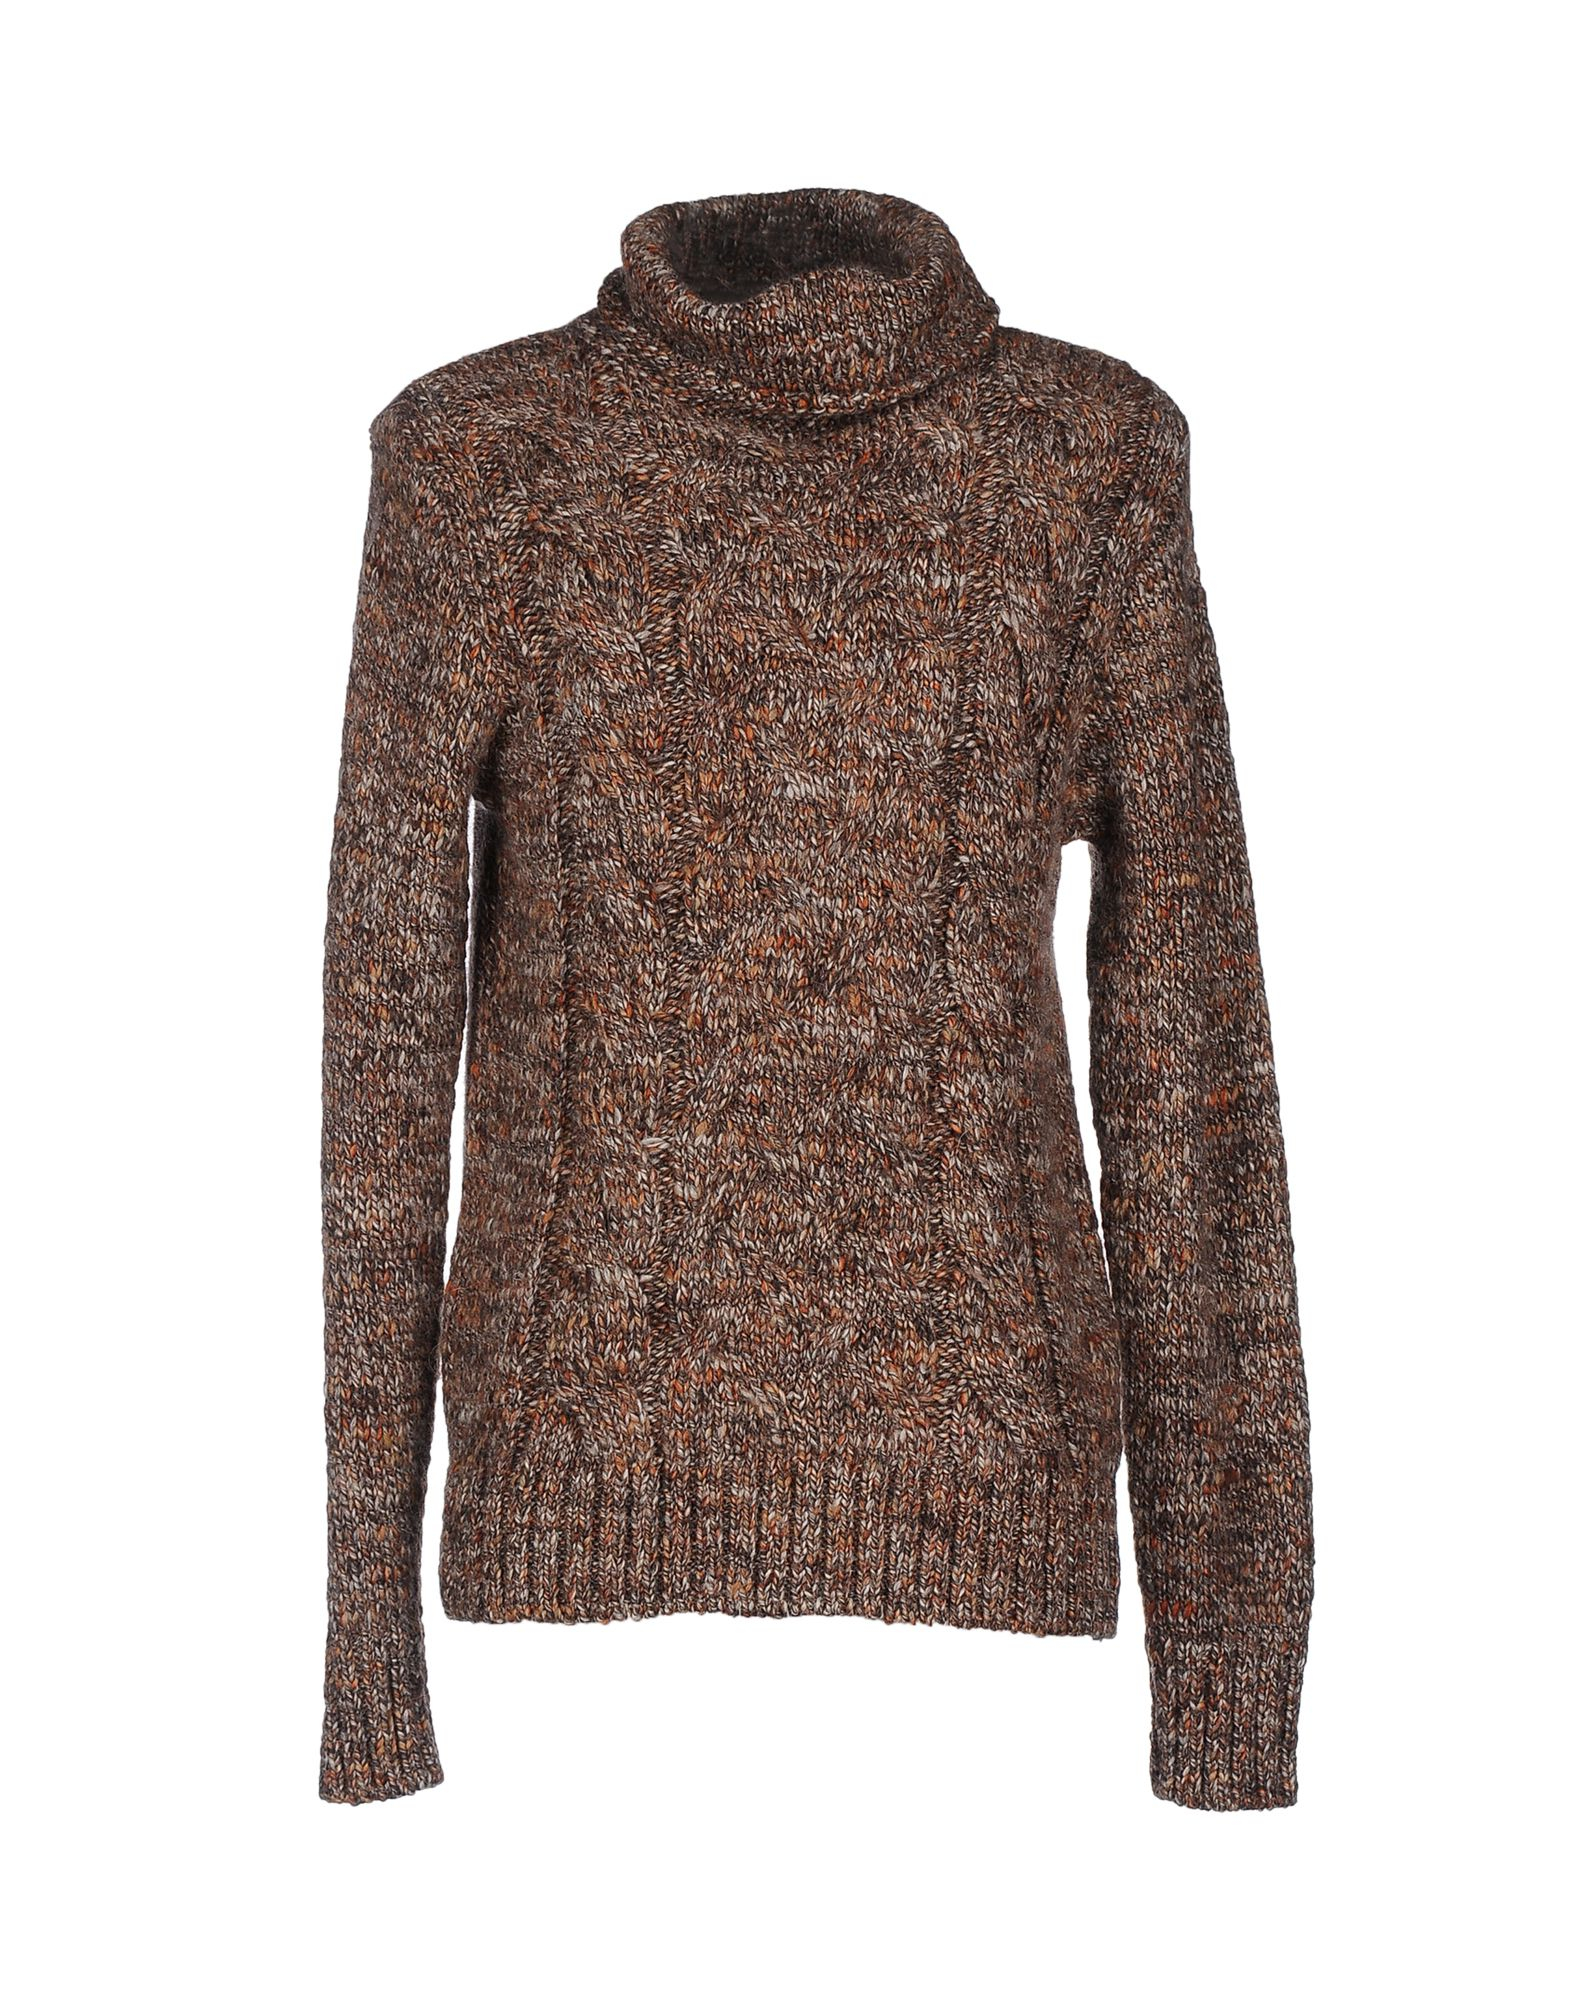 Free shipping and returns on Women's Brown Sweaters at perscrib-serp.cf